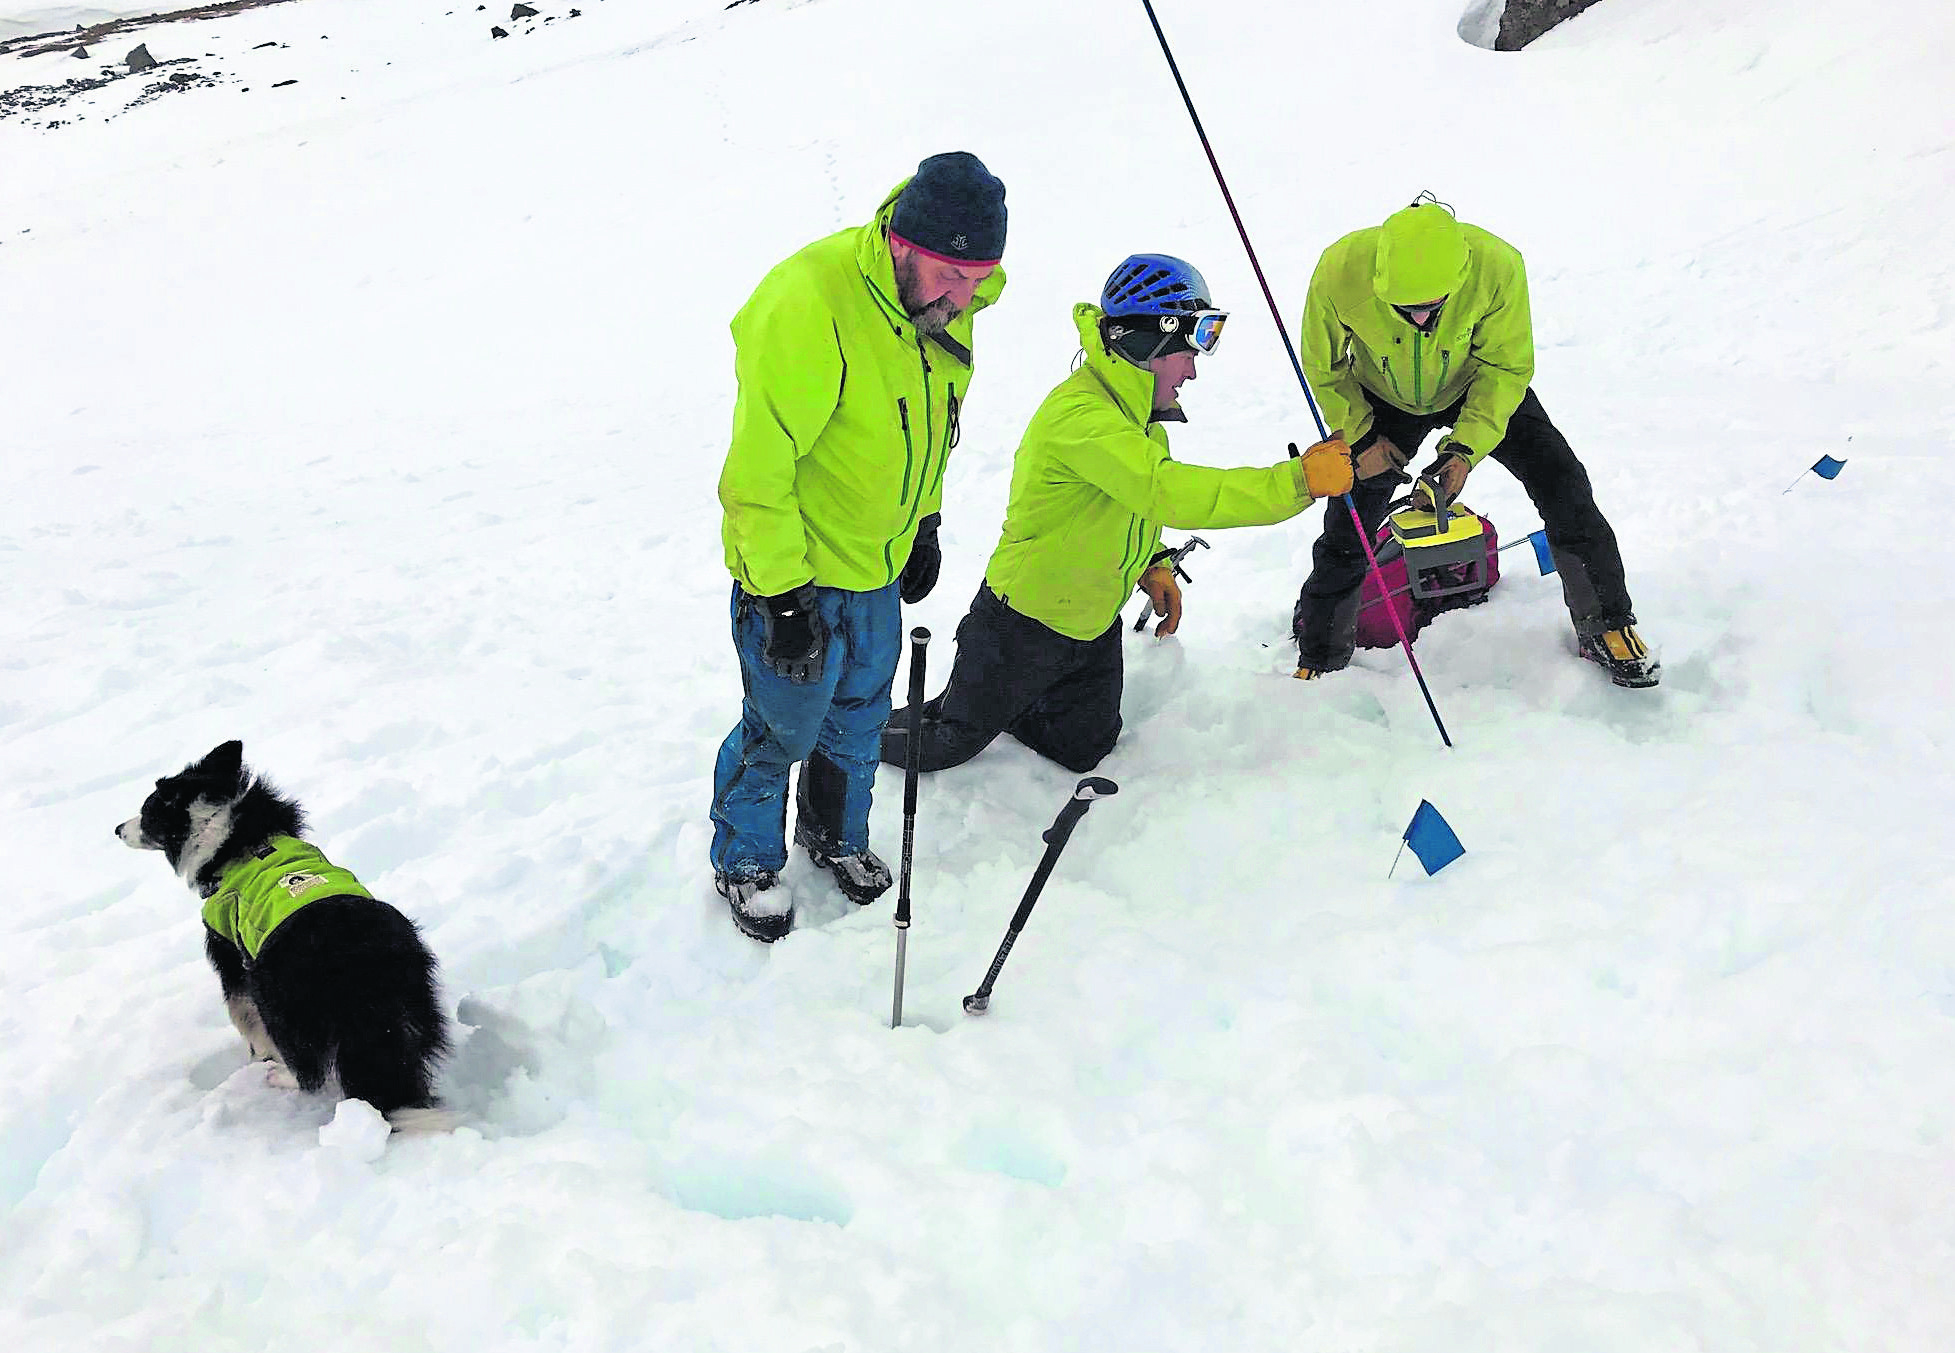 The Lochaber Mountain rescue team during the search for the missing climber on Ben Nevis.